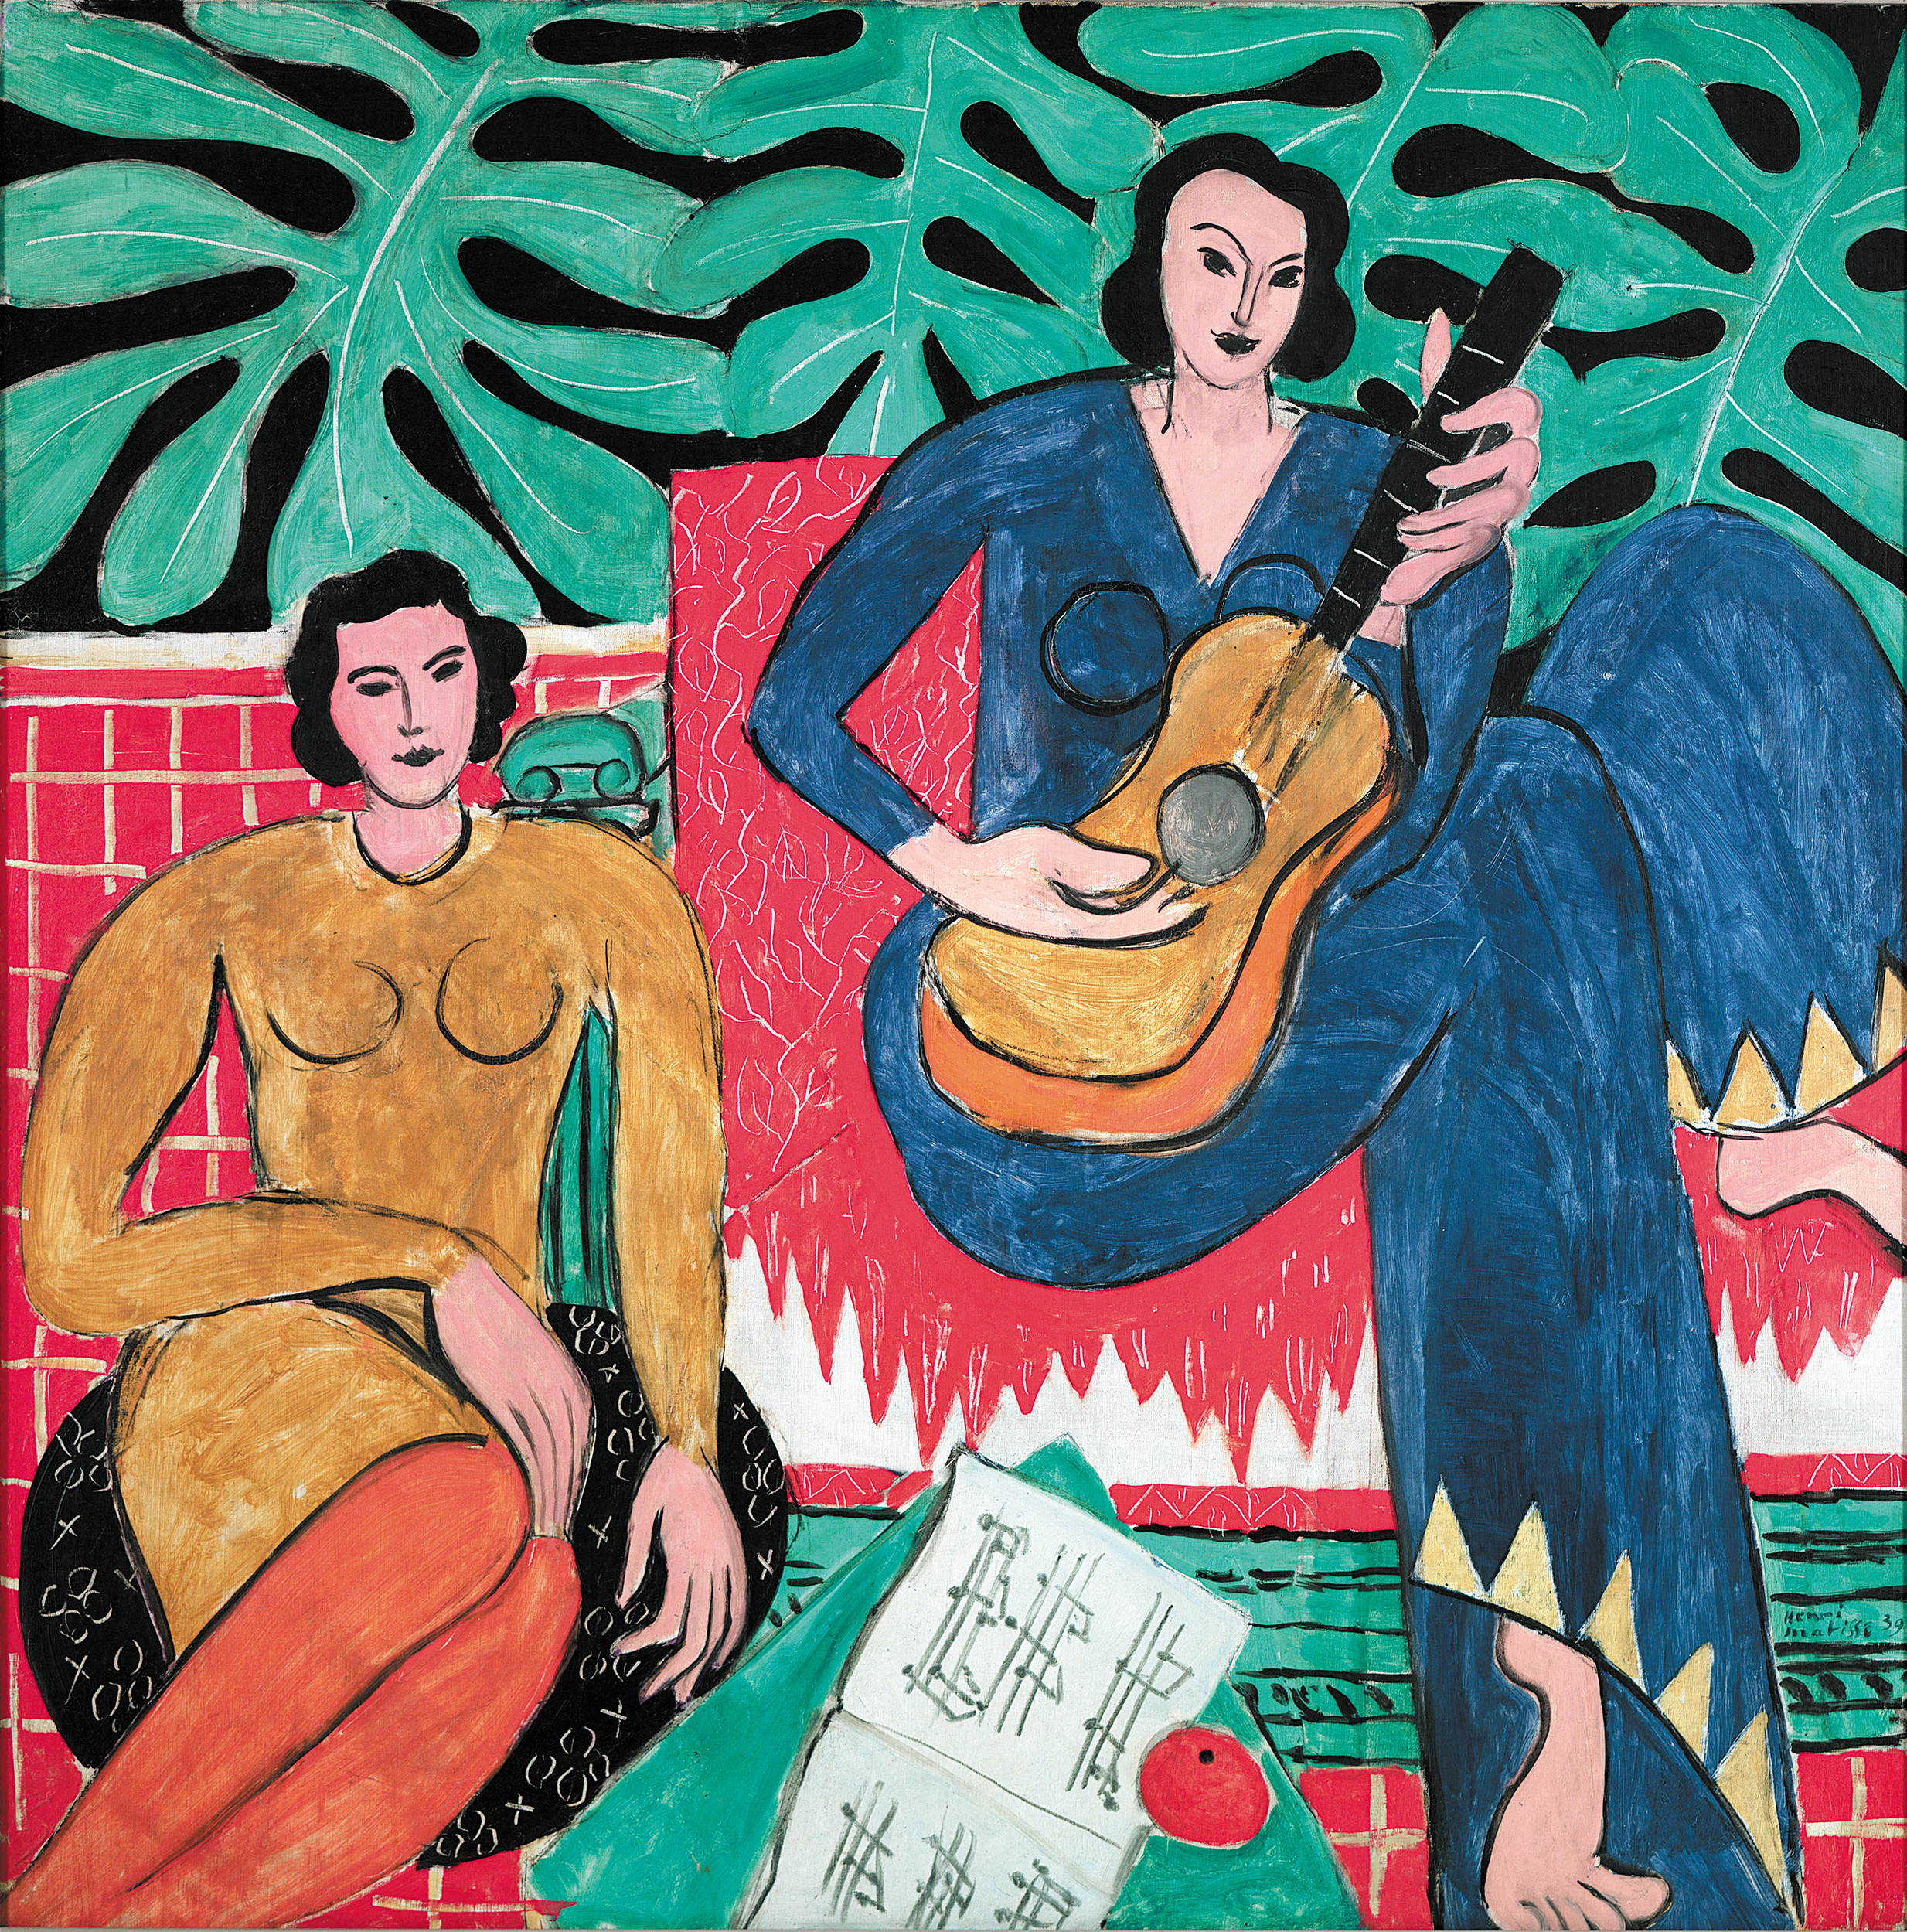 """La Musique"" 1939  by Henri Matisse (French 1869-1954) is a 45-inch by 45-inch oil on canvas included in the Modern Masters exhibit at the Denver Art Museum through June 8."